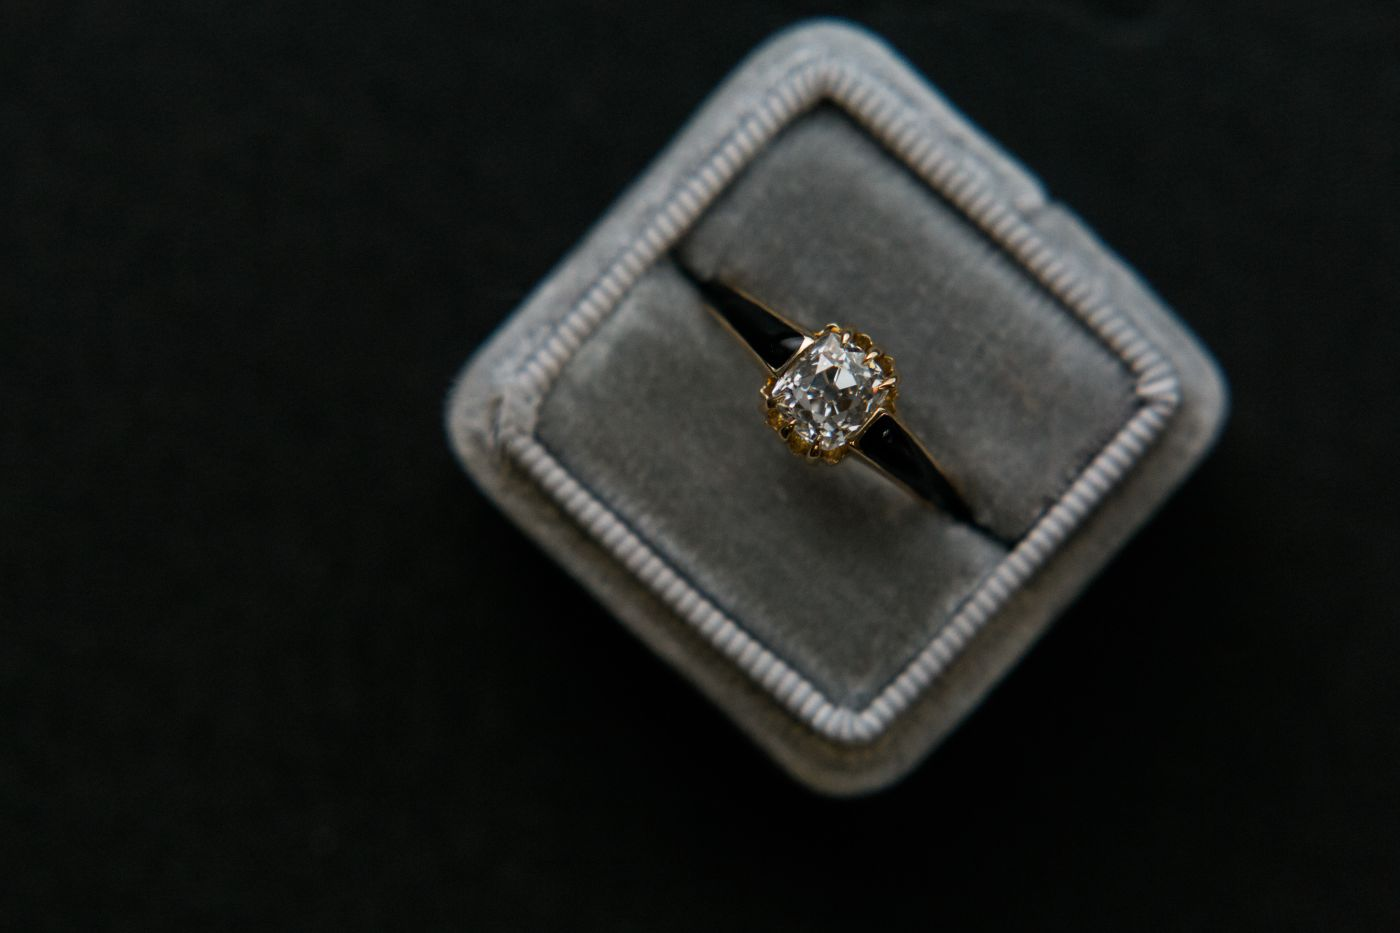 Crafton Hills, super unique Victorian (1890), 14k rose gold + black enamel, 1.10ct Old Mine Cushion cut diamond. Matching band.